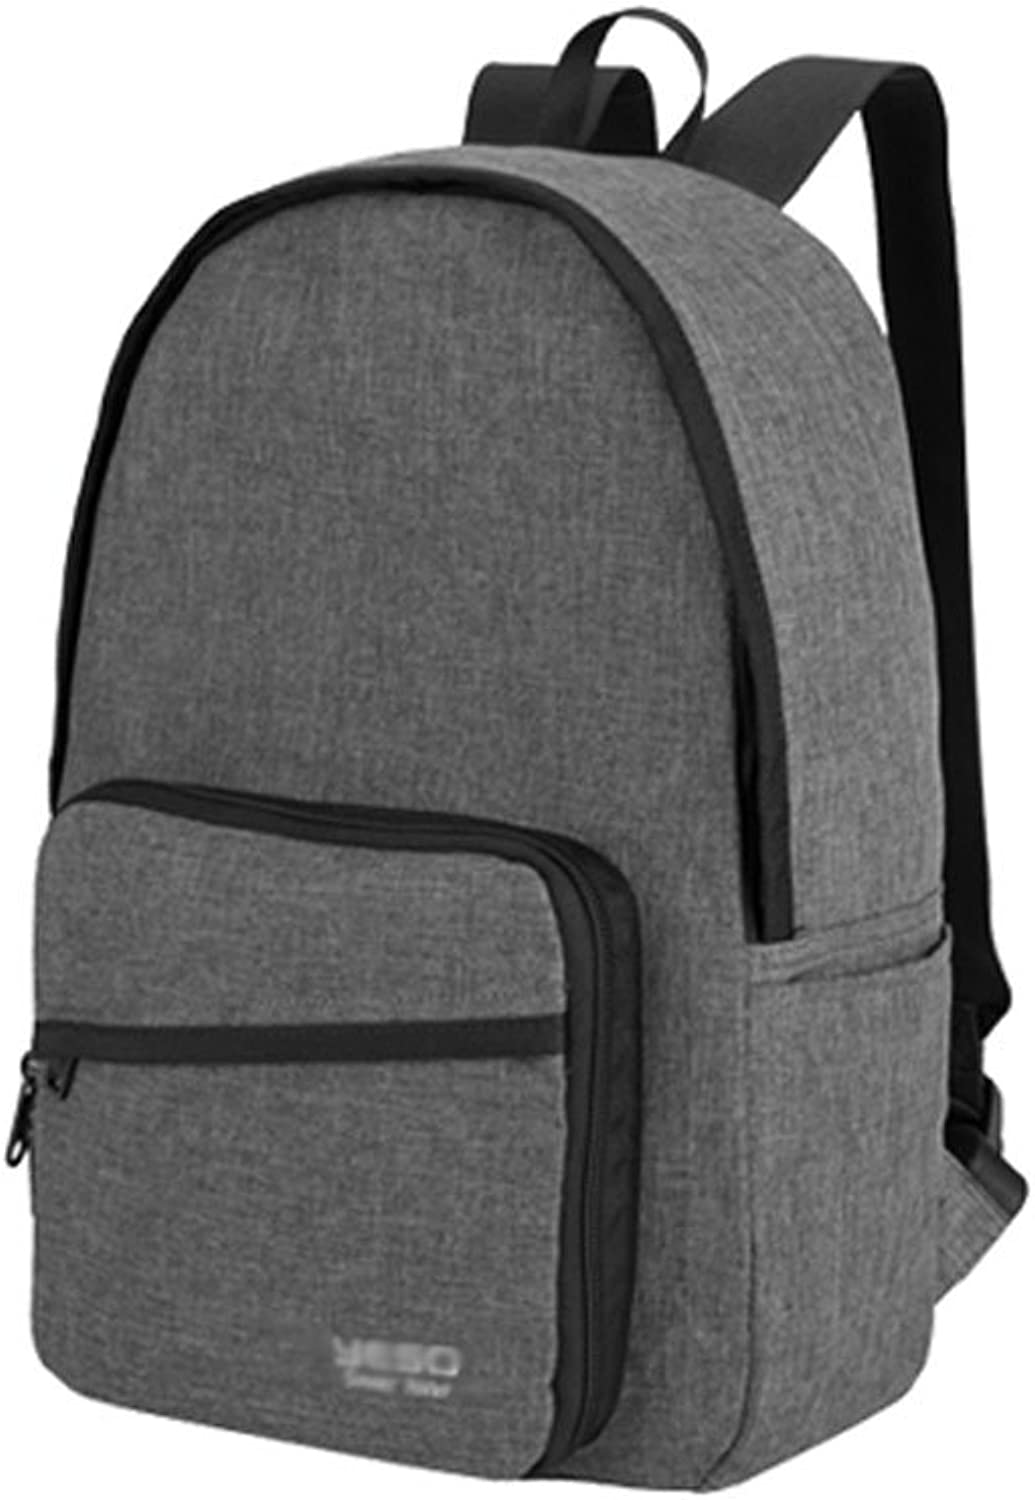 ZJ-Travel Backpack Backpack Male Folding Backpack Casual Lightweight Travel Bag Outdoor Sports Training Gym Bag &&